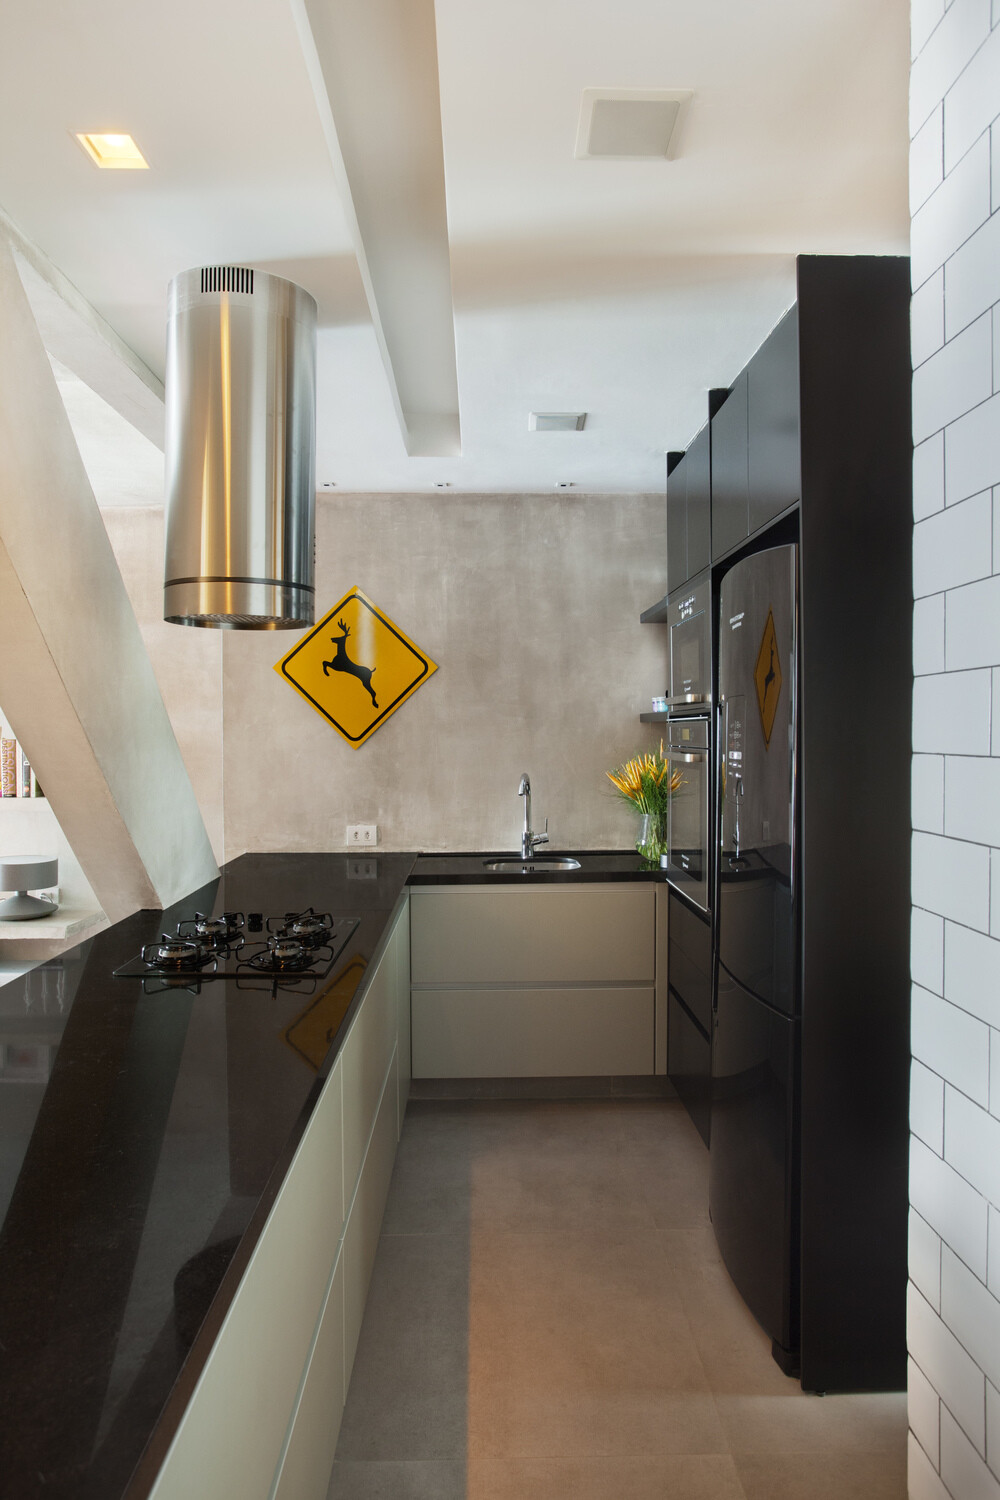 New York Style Apartment in Ipanema Automated and Controlled Via Ipad (3)